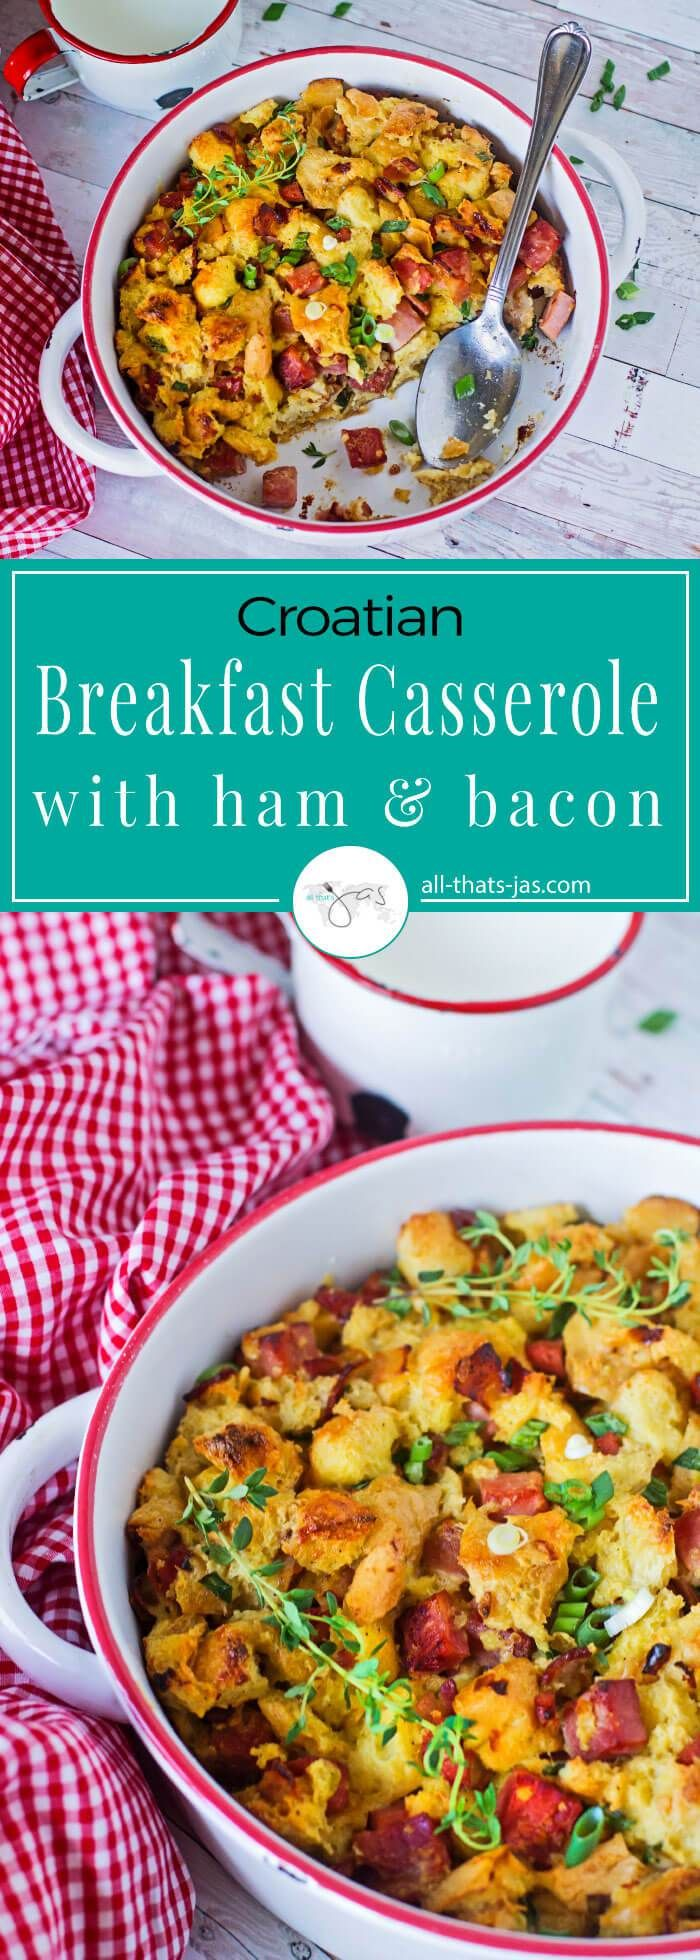 Breakfast casserole with ham and bacon - Traditionally served on Easter Sunday, this dish combines leftover or fresh bread, ham, and bacon. They are mixed with eggs and baked to a golden perfection. | allthatsjas.com | #casserole #breakfast #Easter #homecooking #cooking #brunch #easy #recipe #comfortfood #budgetfriendly